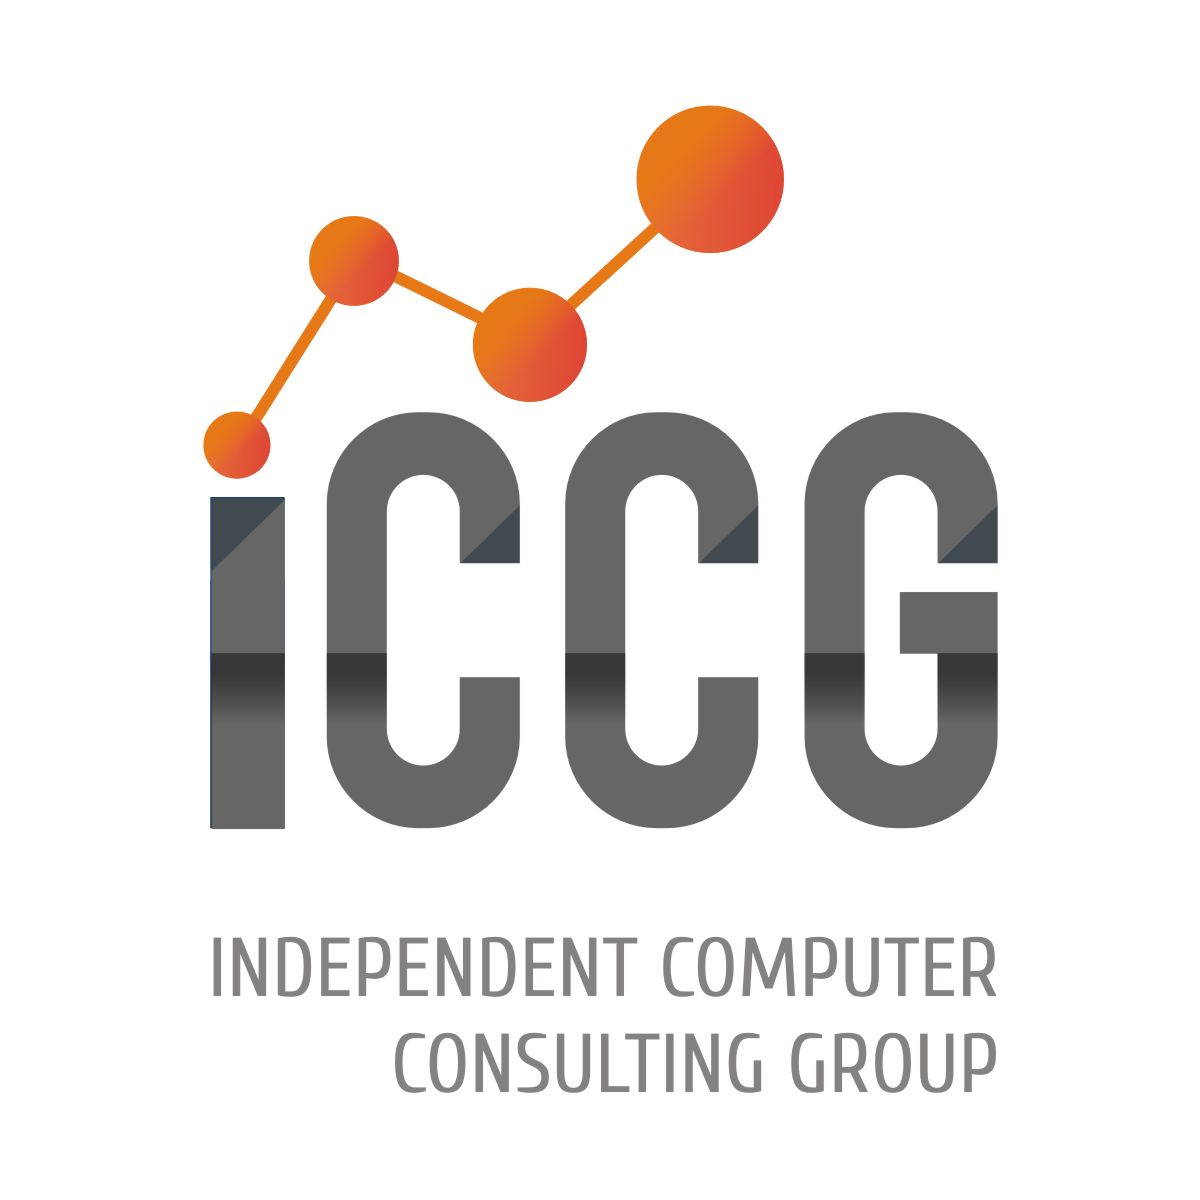 Independent Computer Consulting Group (ICCG) and CADTALK Form Strategic Partnership to Provide CAD/PDM/PLM - Integration for Infor's ERP Solutions